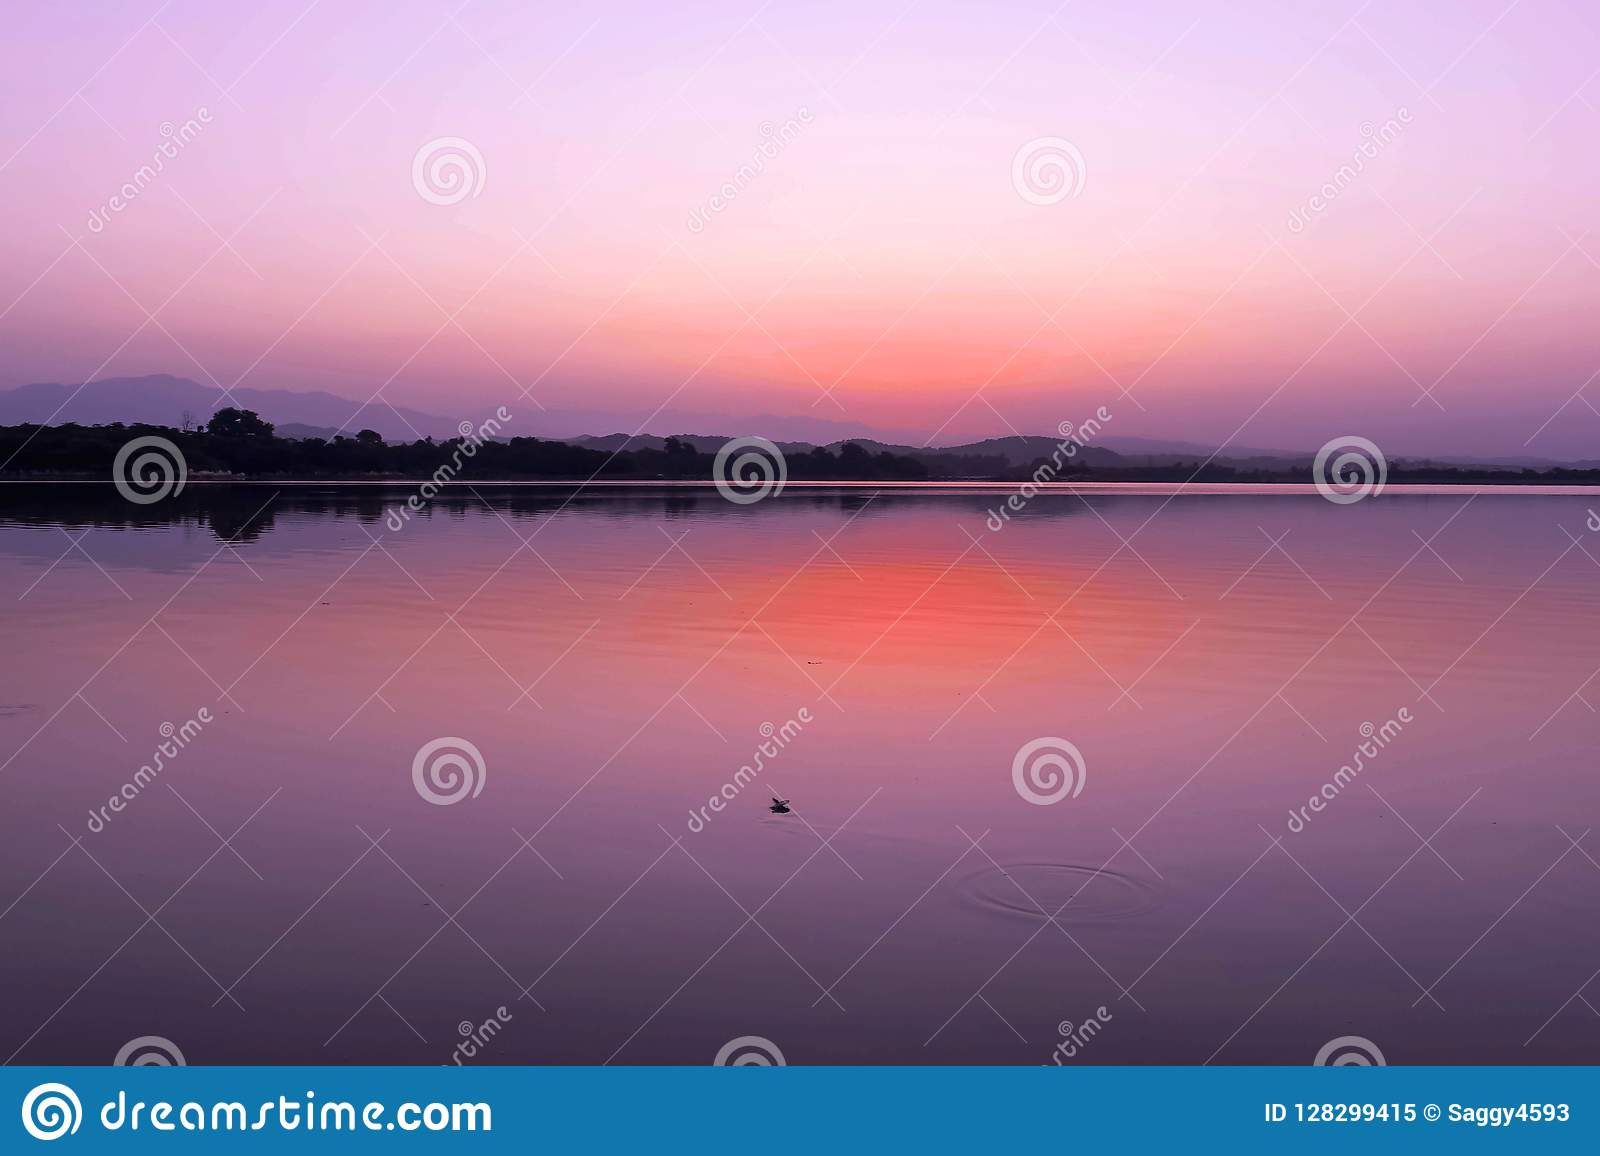 GLORIOUS VIEW OF LAKE BEFORE SUN RISE IN EARLY MORNING